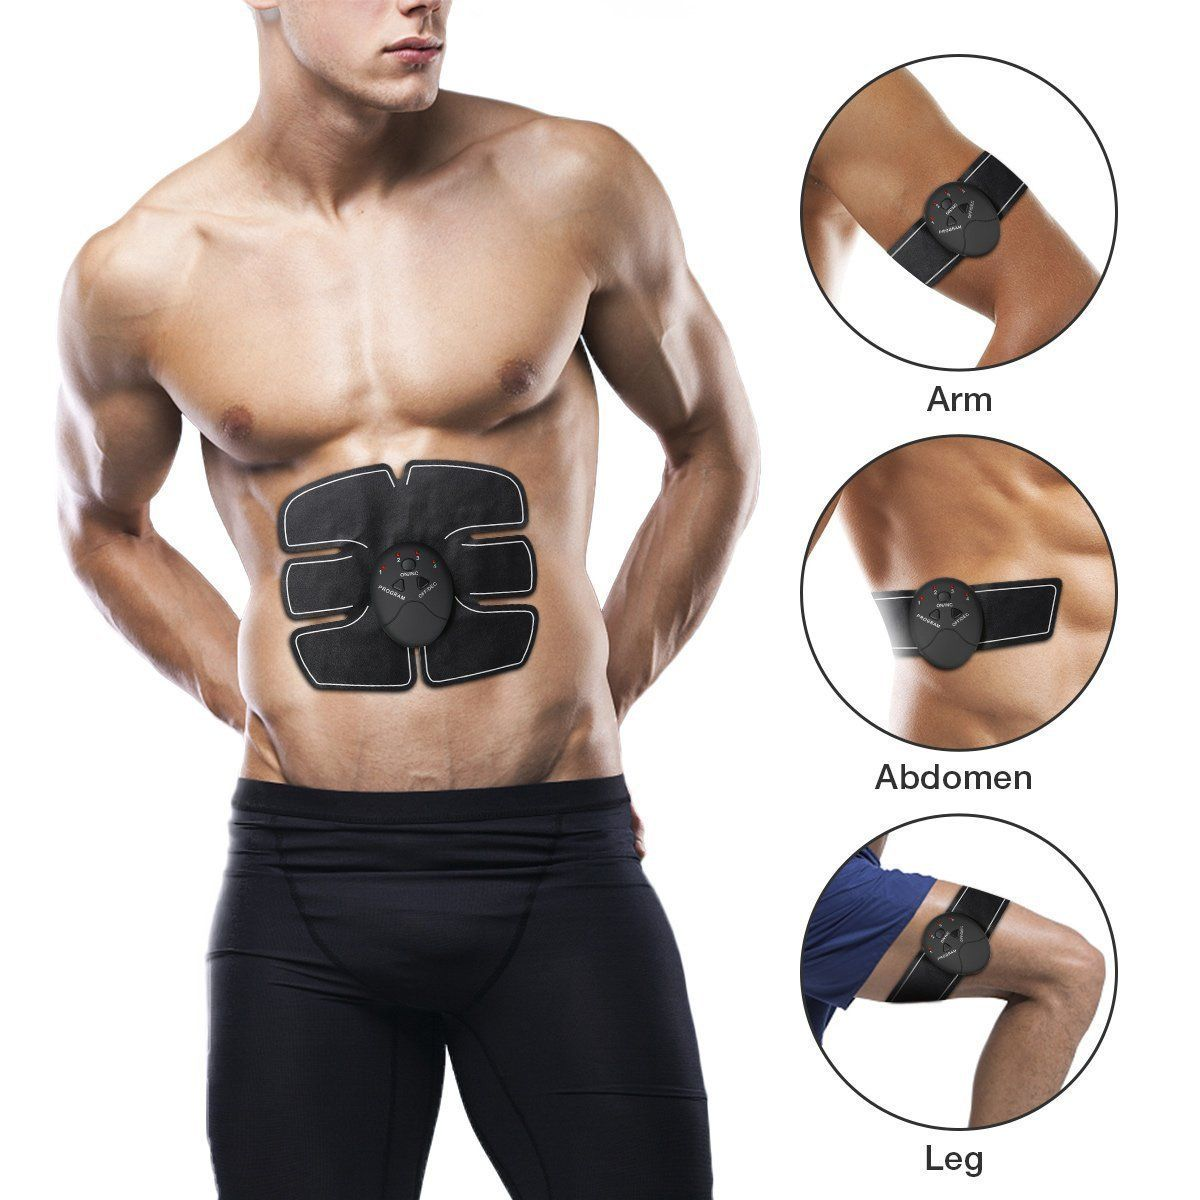 Rectus Abdominis Muscle Fitness Technology Kit 6 Pack Abs Trainer